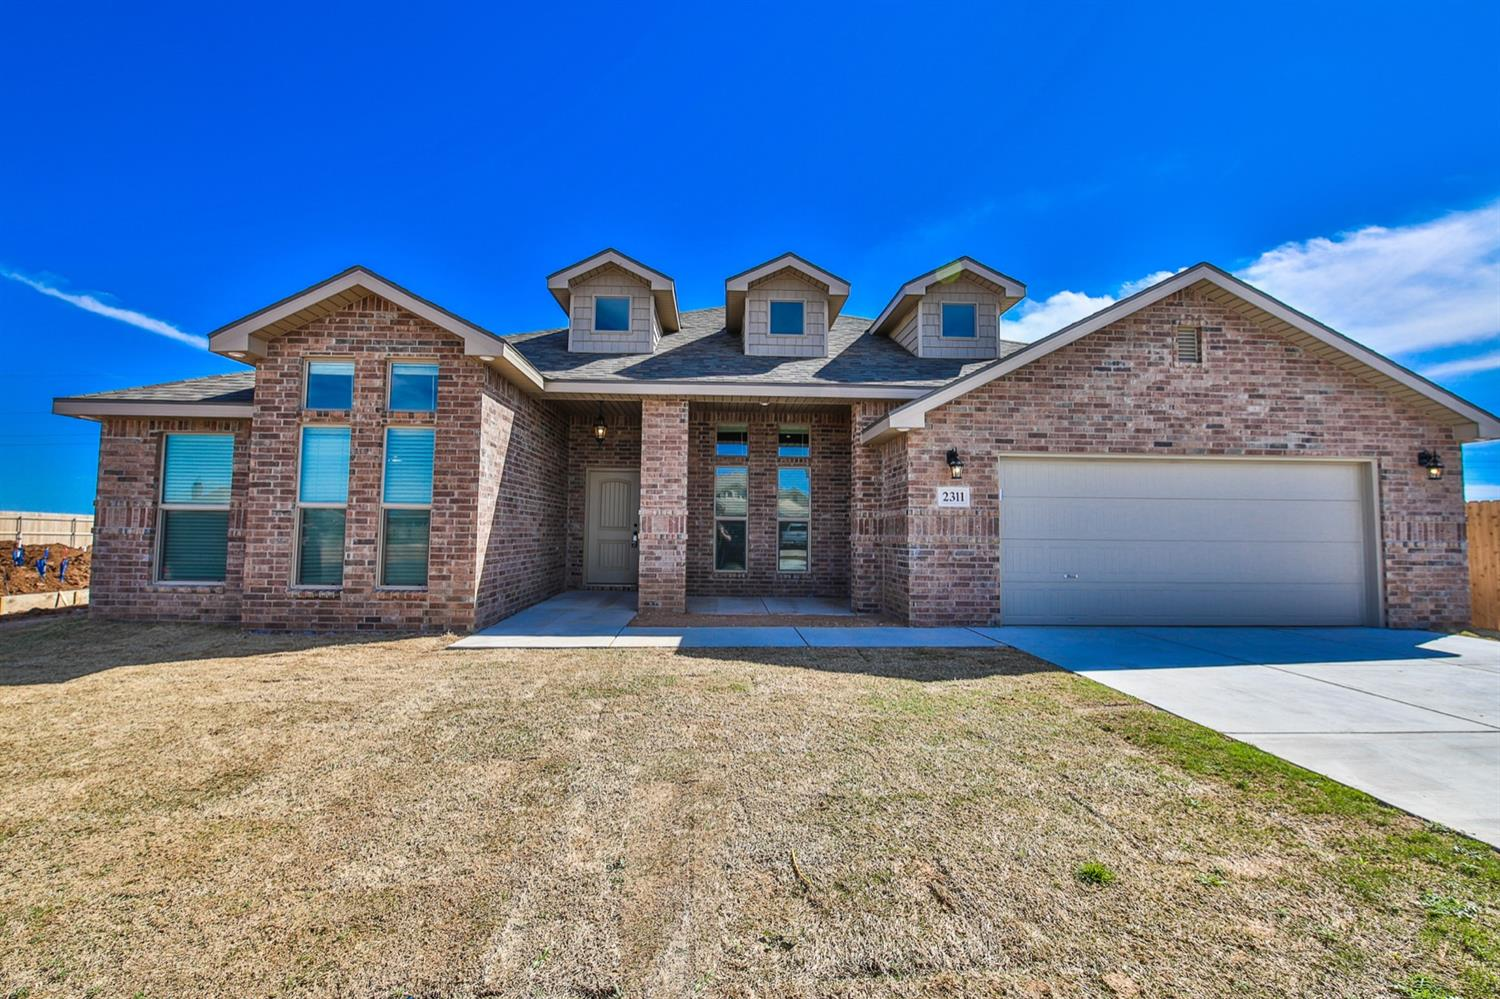 Fantastic, new construction Betenbough 4 bed 3 bath in Cooper ISD. The spacious front porch will be the first thing that welcomes you into this beauty. Inside you will find arge bedrooms, impeccable finishes in the kitchen including double ovens, double walk-in closets in the master suite, and a covered patio great for entertaining. Don't miss this opportunity! Schedule your appointment today!!